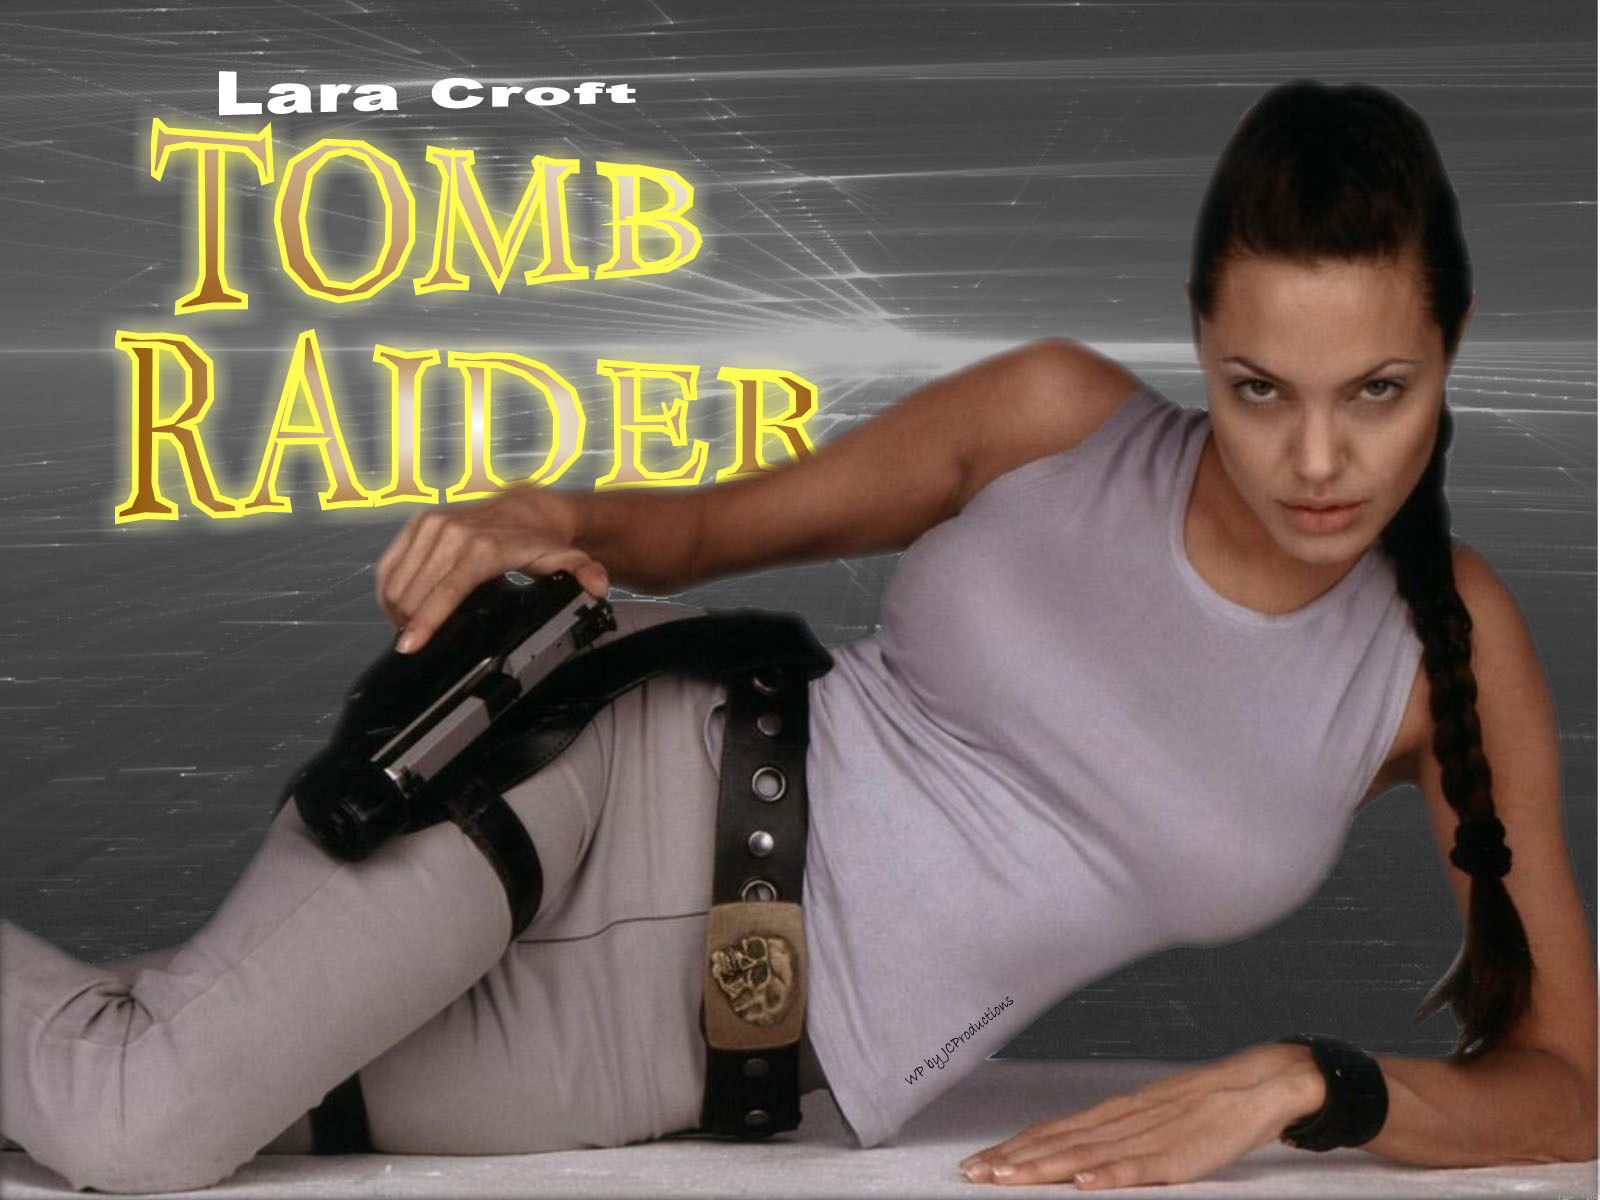 Lara Croft Of Tomb Raider Aka Angelina Jolie Lara Croft Tomb